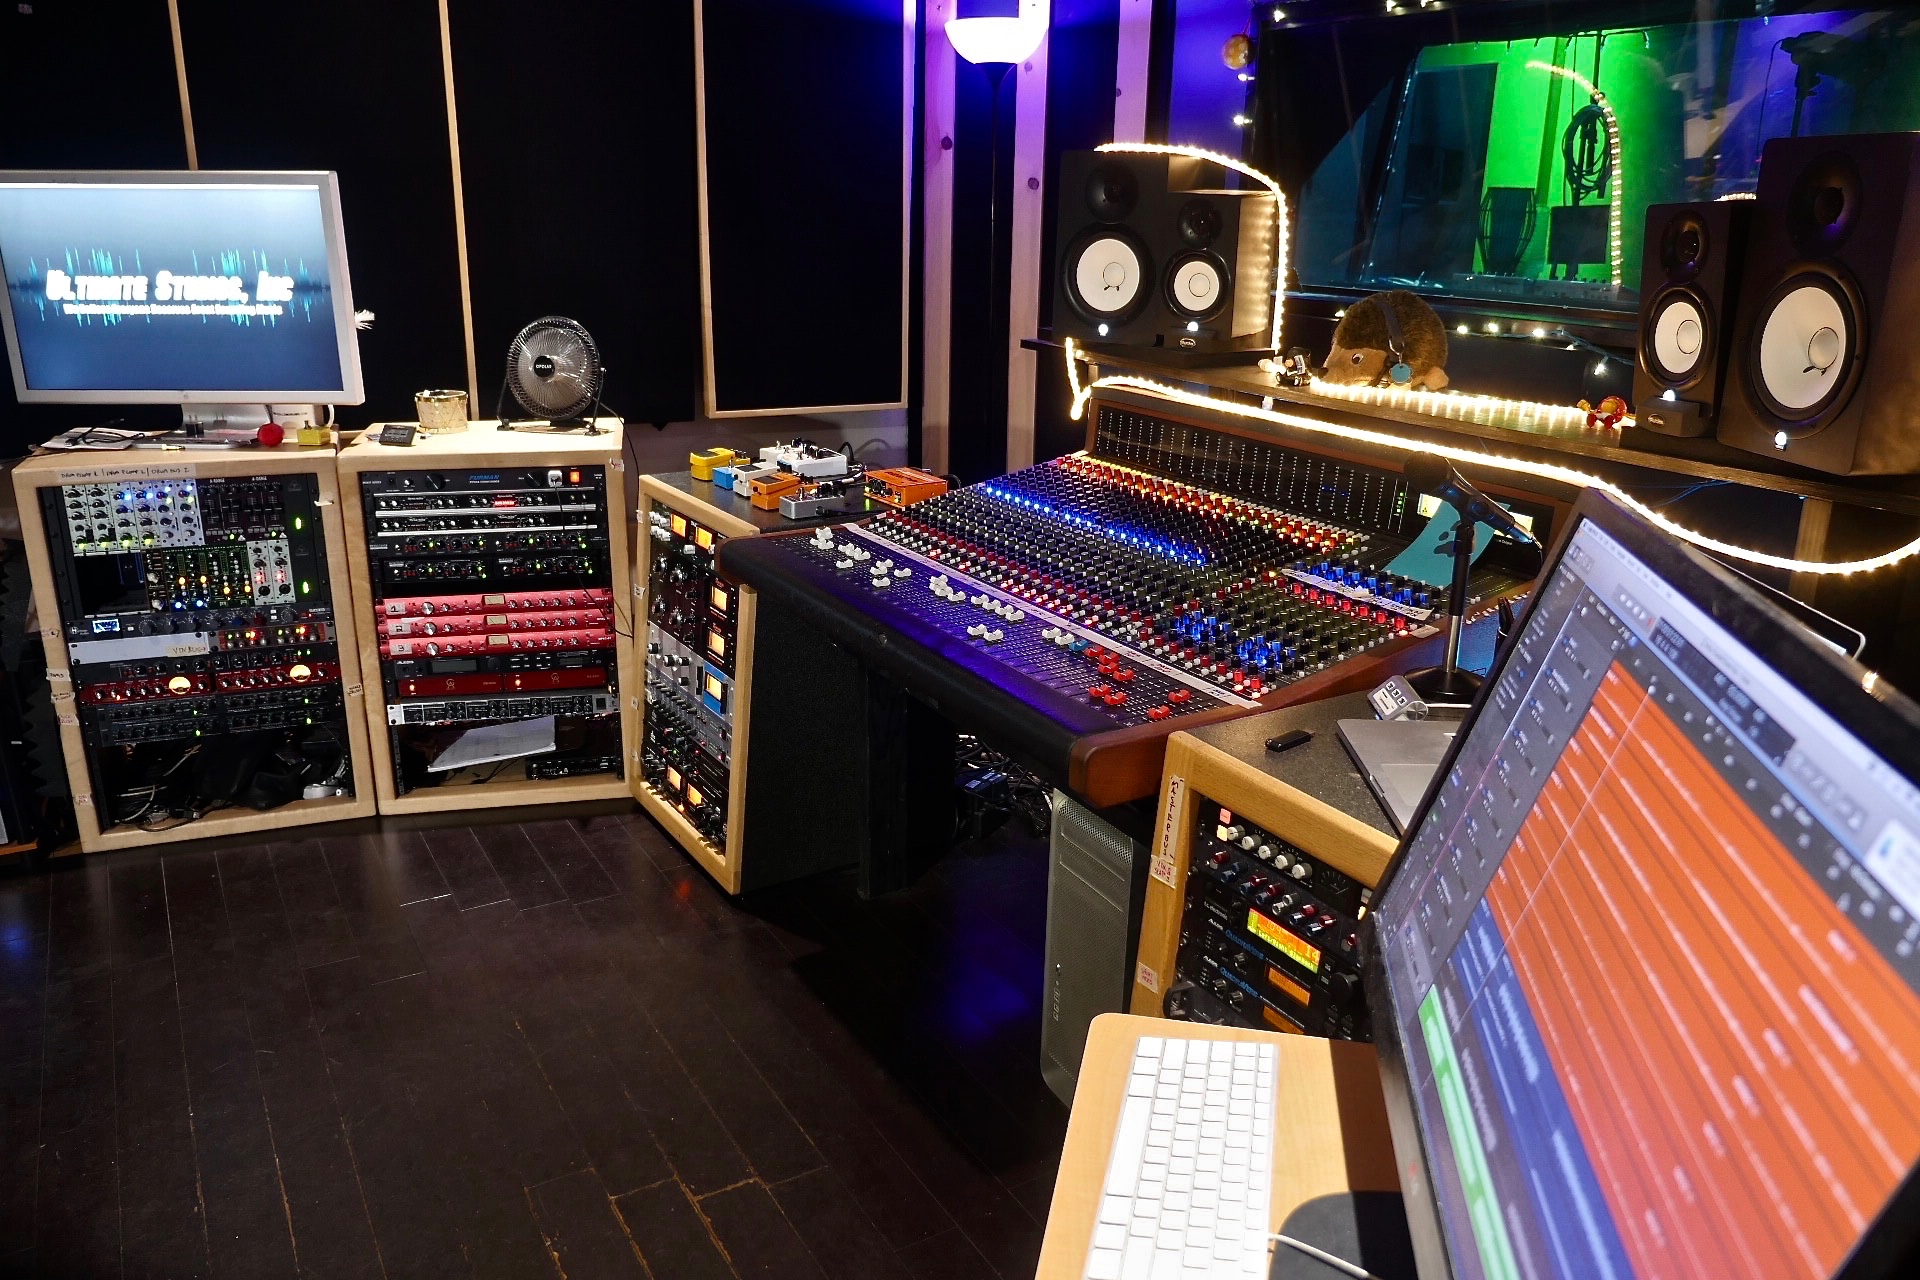 The control room featuring the Trident 88 analog recording console at Ultimate Studios, Inc